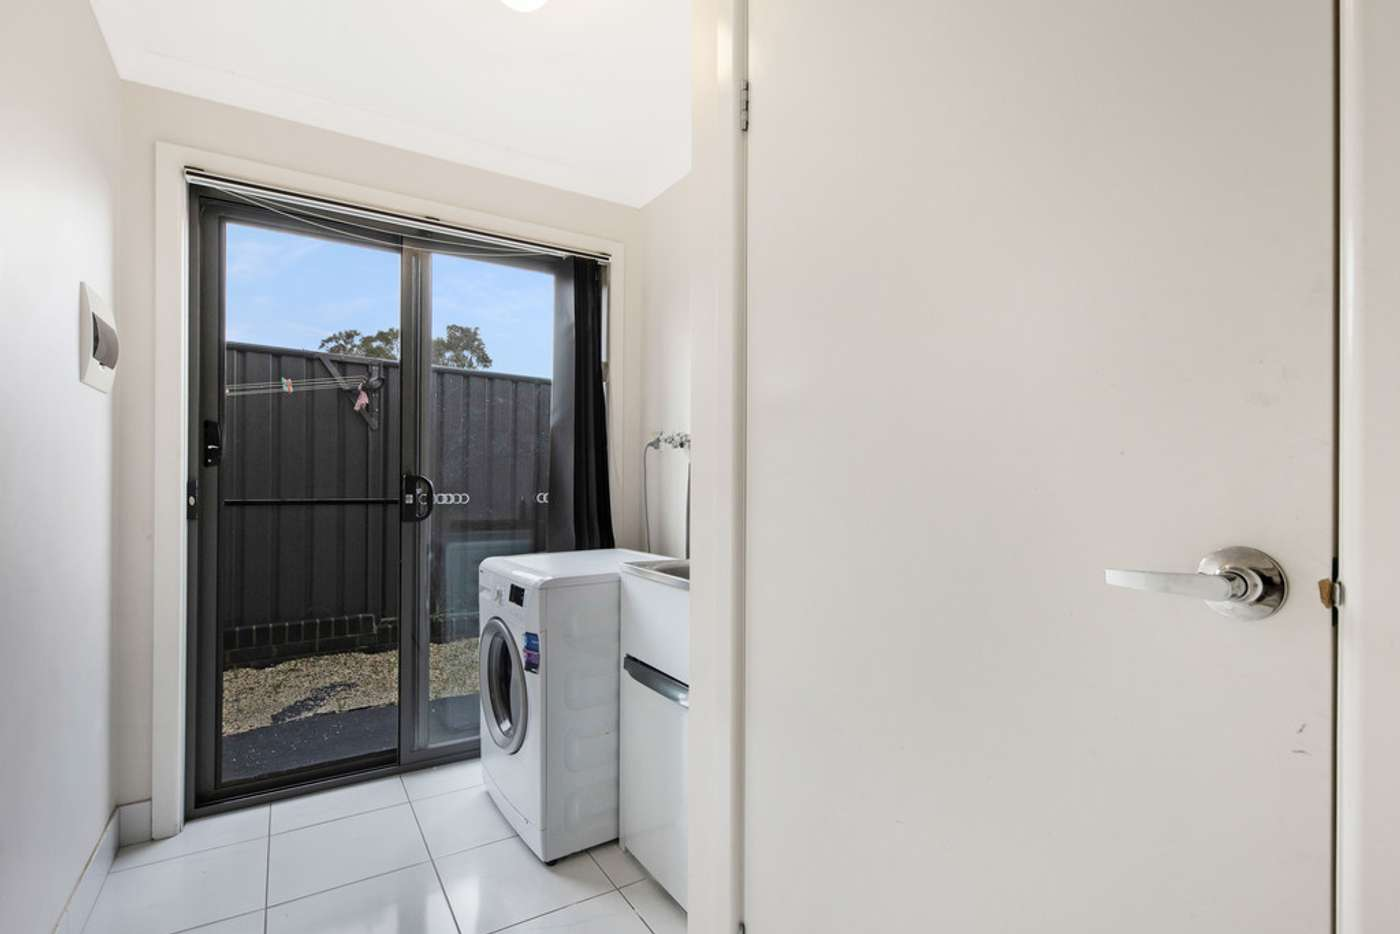 Sixth view of Homely house listing, 11 McAuliffe Street, Wodonga VIC 3690